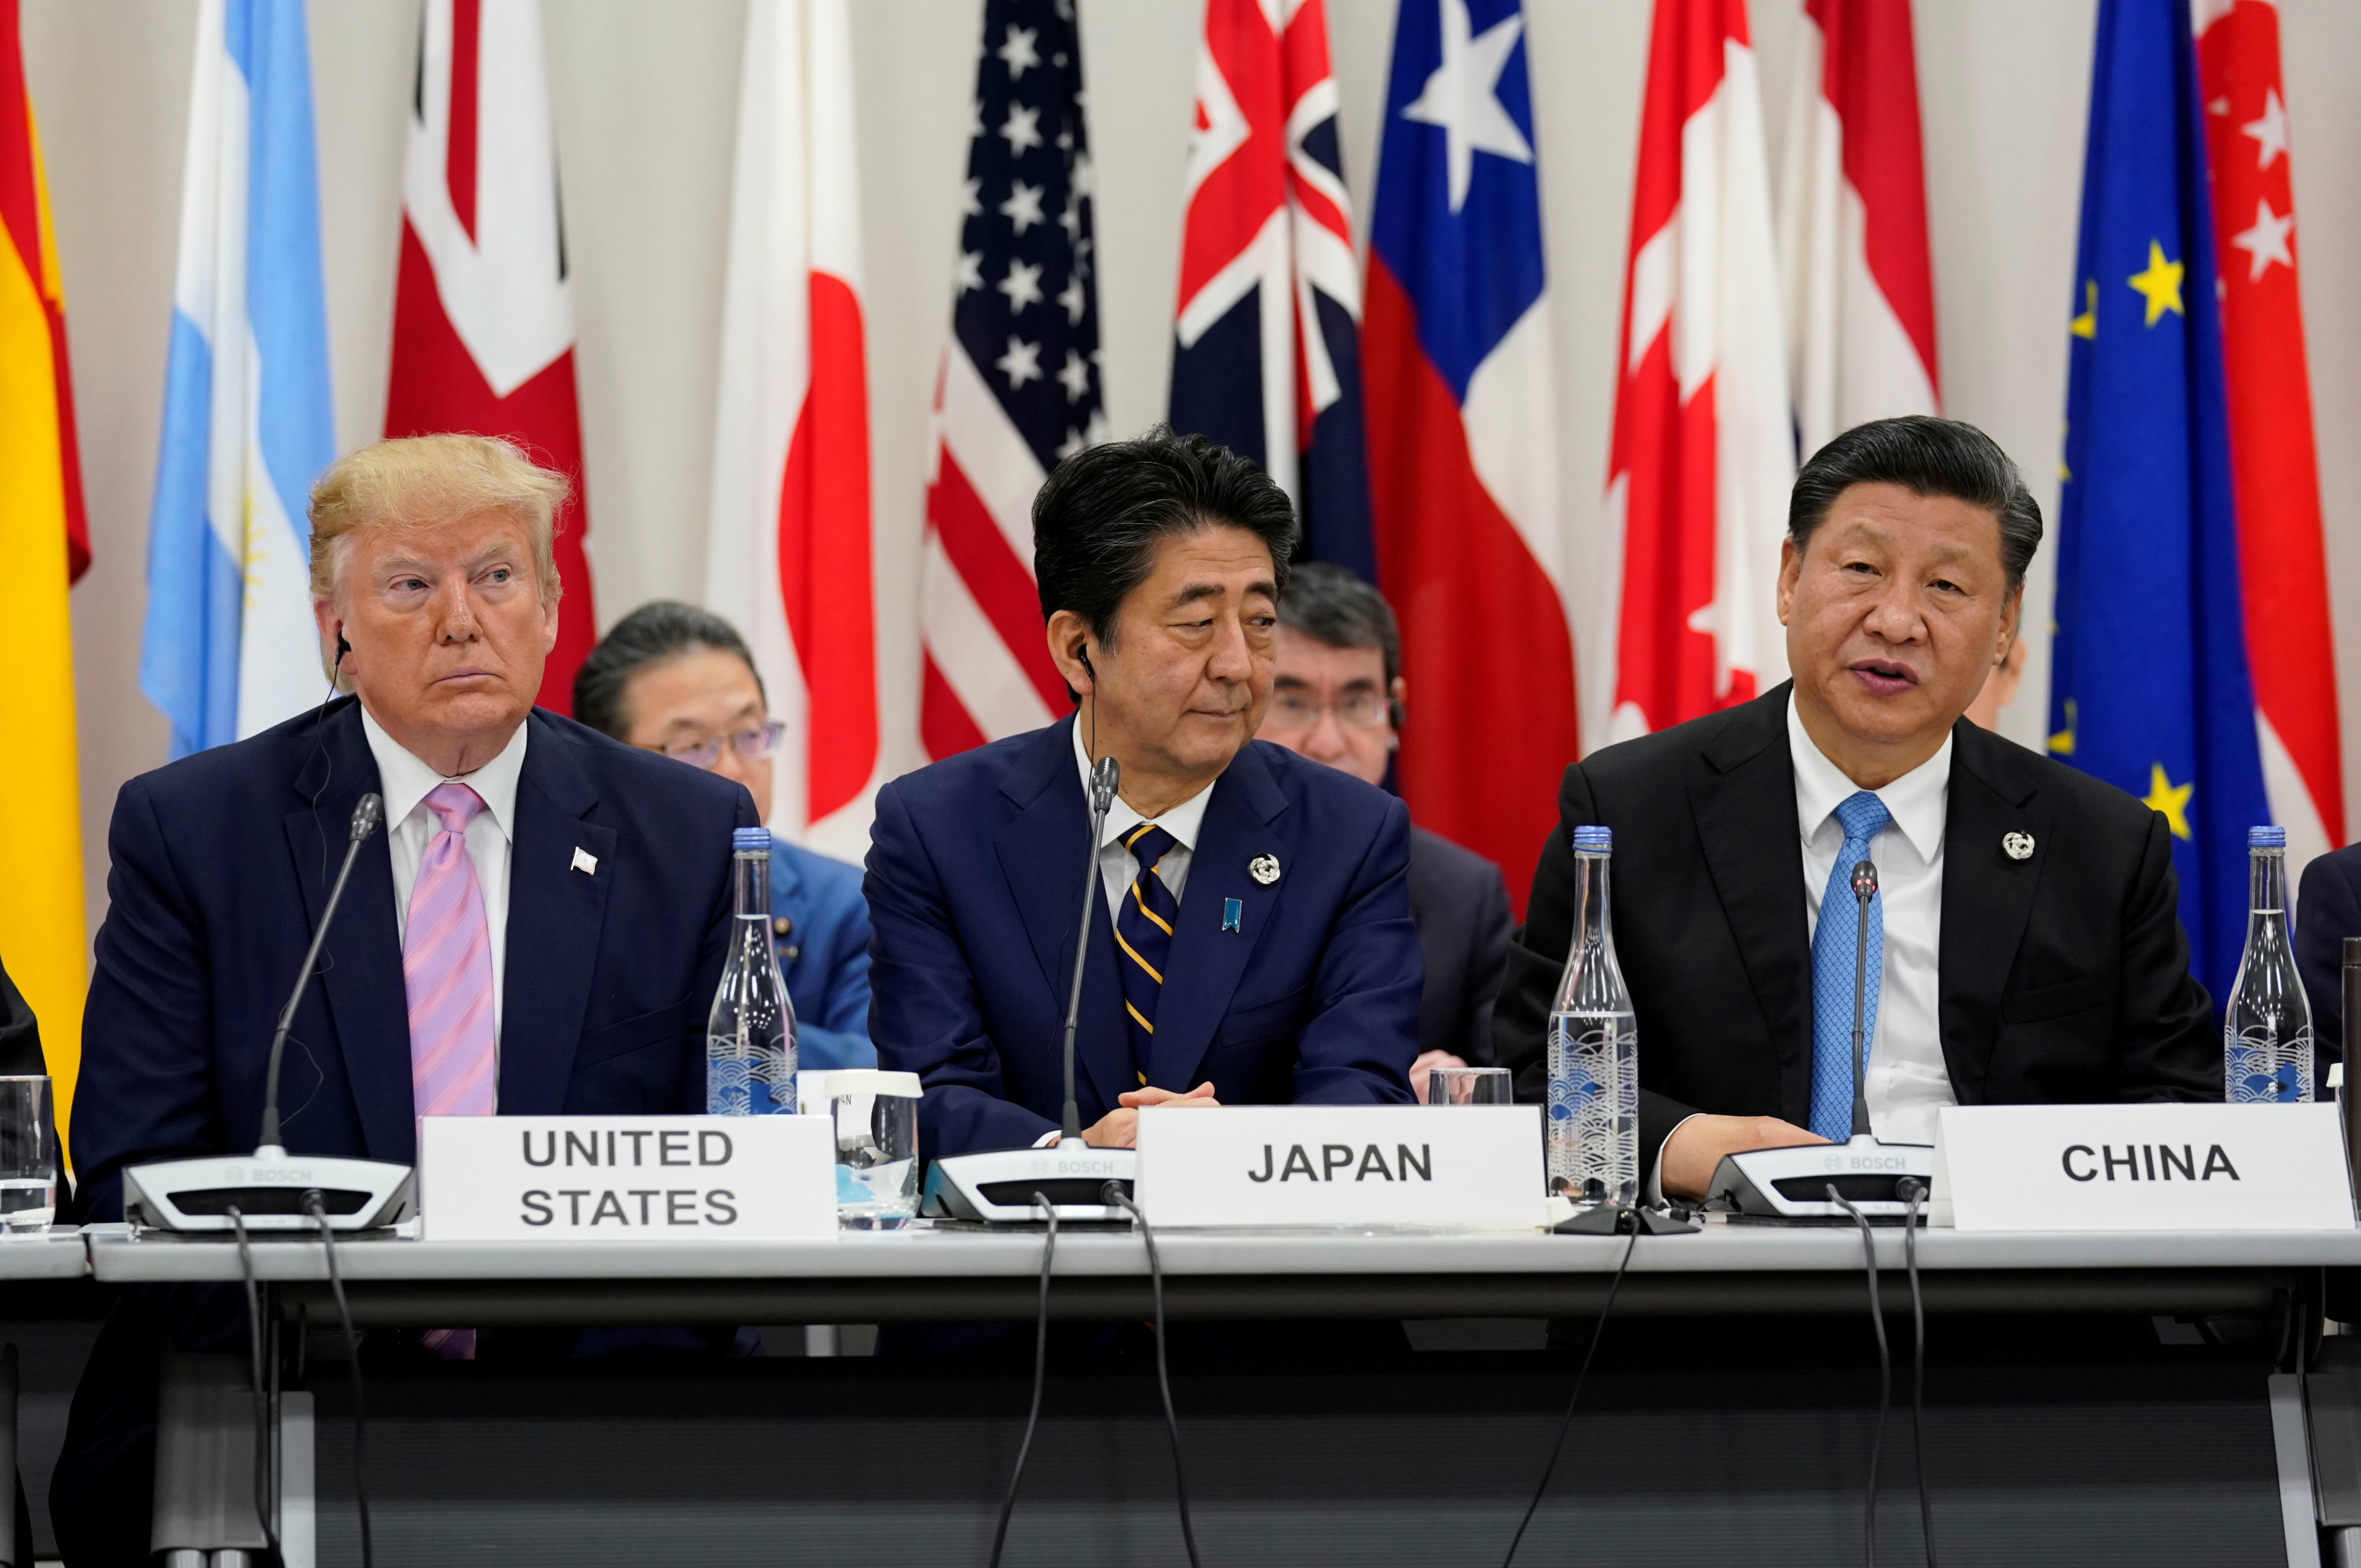 Japan's Prime Minister Shinzo Abe is flanked by U.S. President Donald Trump and China's President Xi Jinping during a meeting at the G20 leaders summit in Osaka, Japan, June 28, 2019